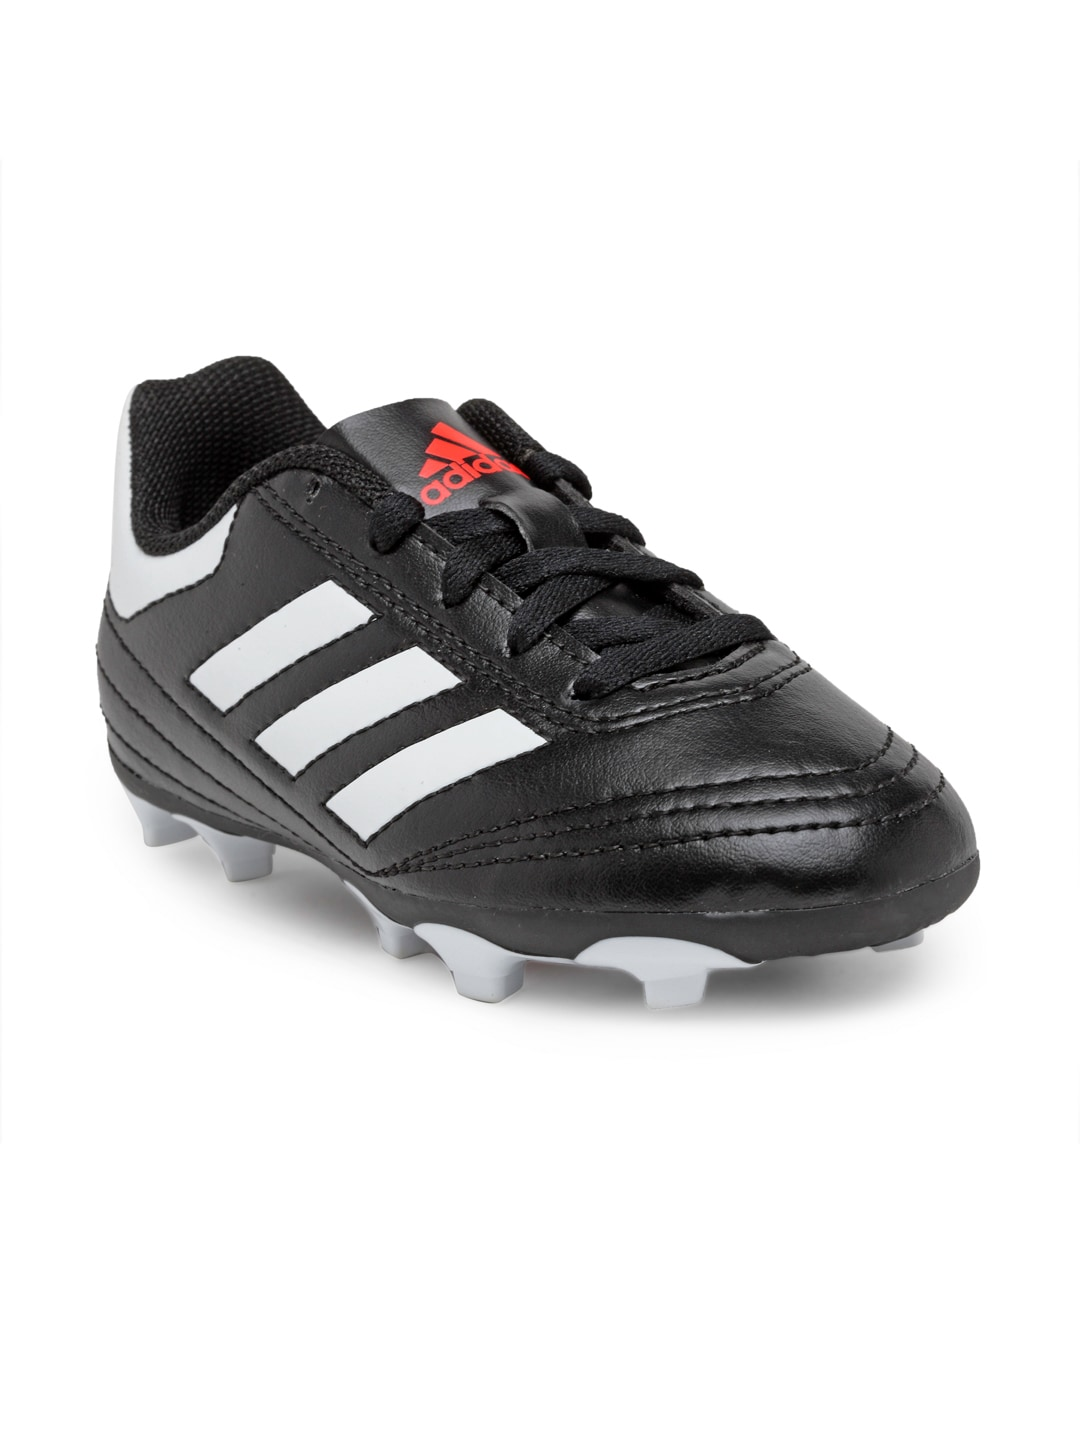 1d556ed69 Adidas Goletto Vi Fg J Black Football Shoes for Boys in India May ...